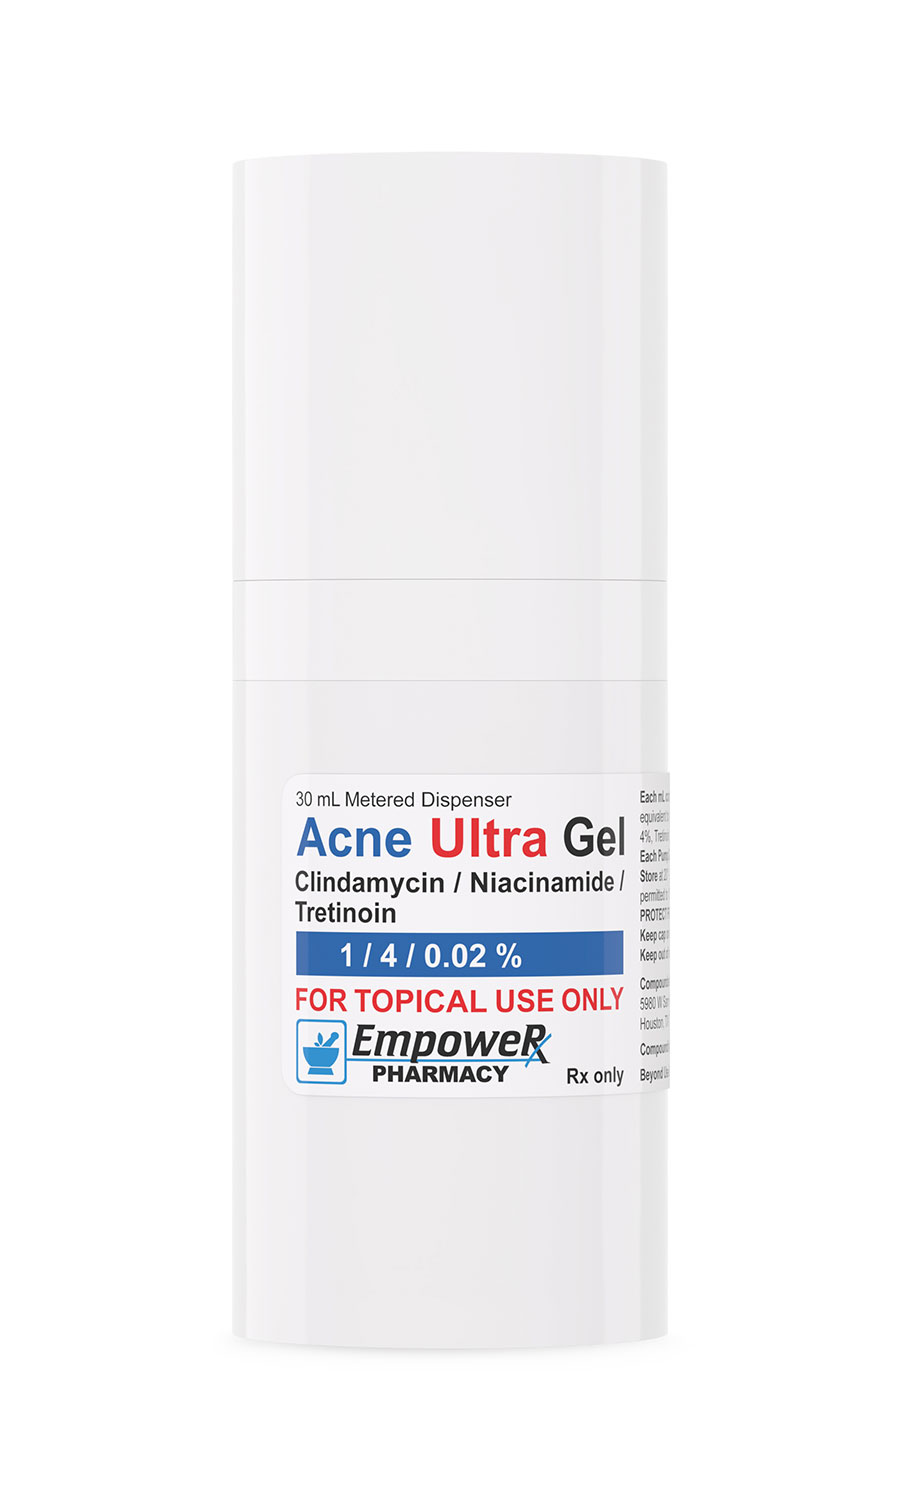 Acne Ultra Gel